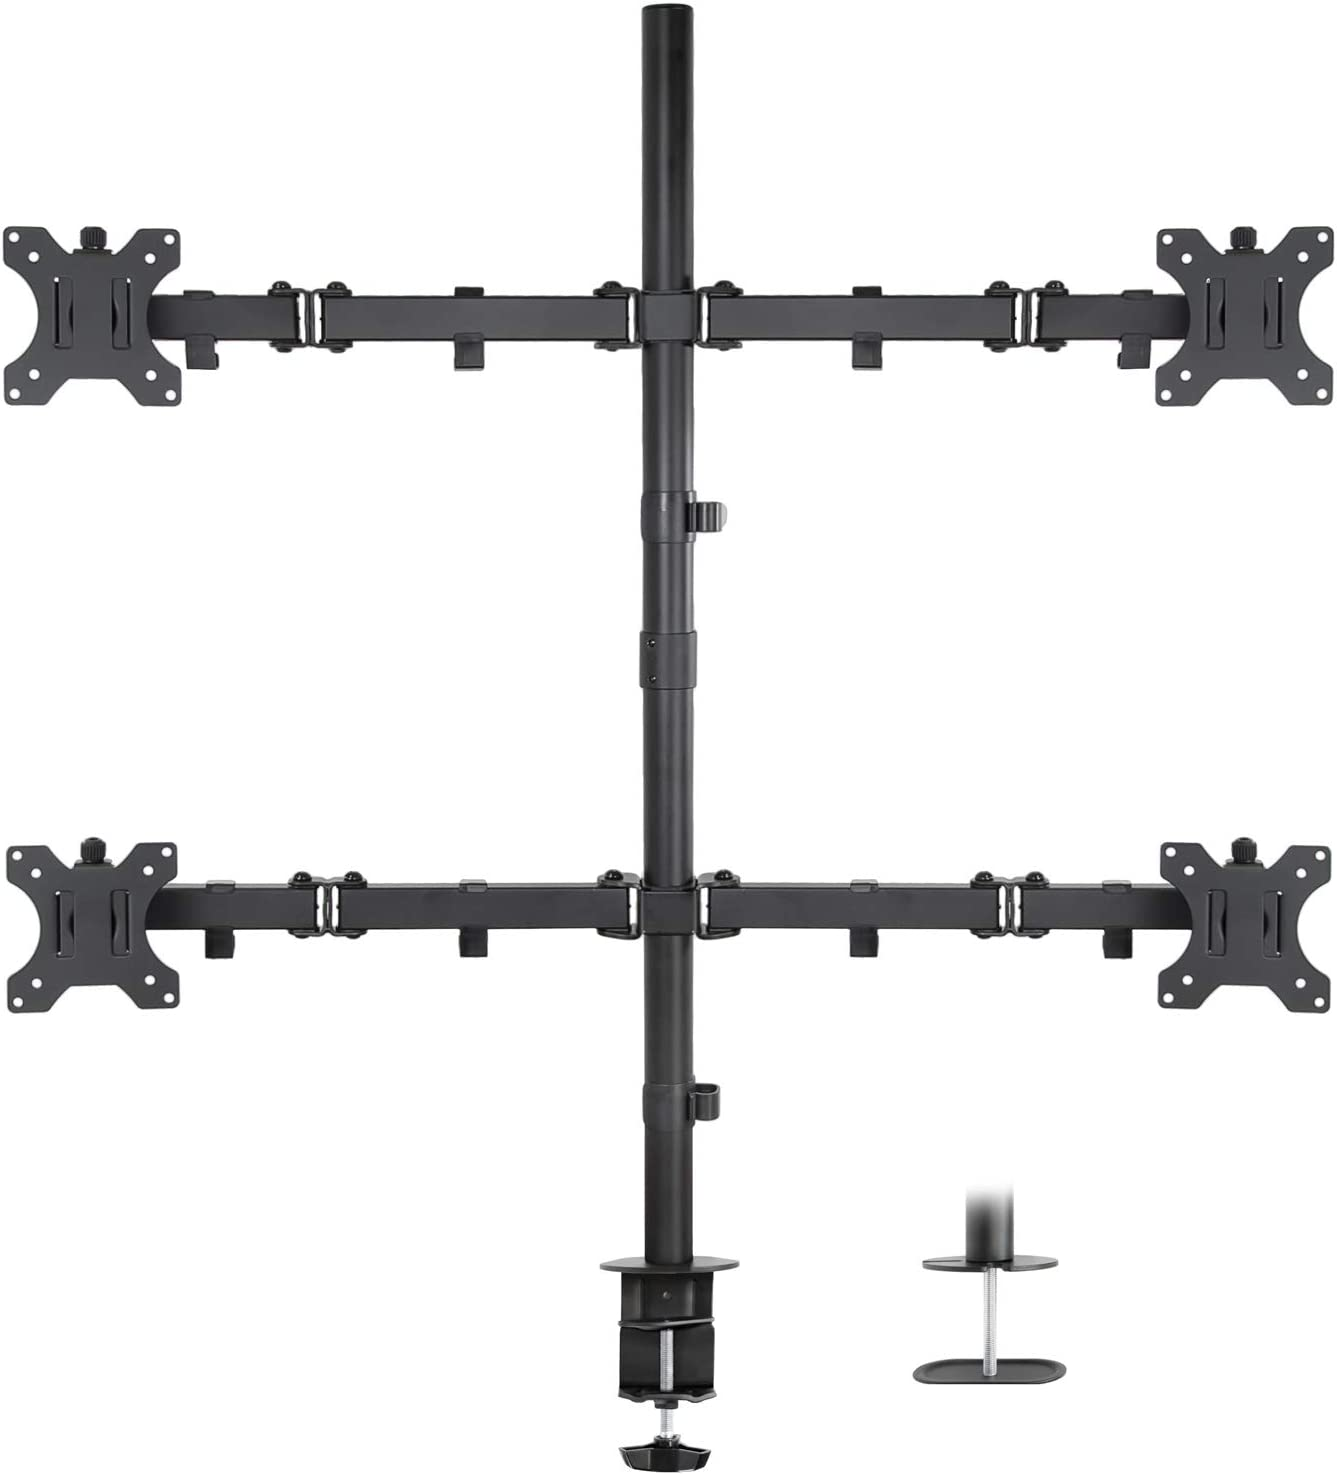 Mount-It! 4 Monitor Stand | Quad Monitor Desk Mount | Fits Four Computer Screens 19 21 24 27 29 30 32 Inches | Heavy Duty Height Adjustable Arms | VESA 75 100 Compatible | C-Clamp and Grommet Bases